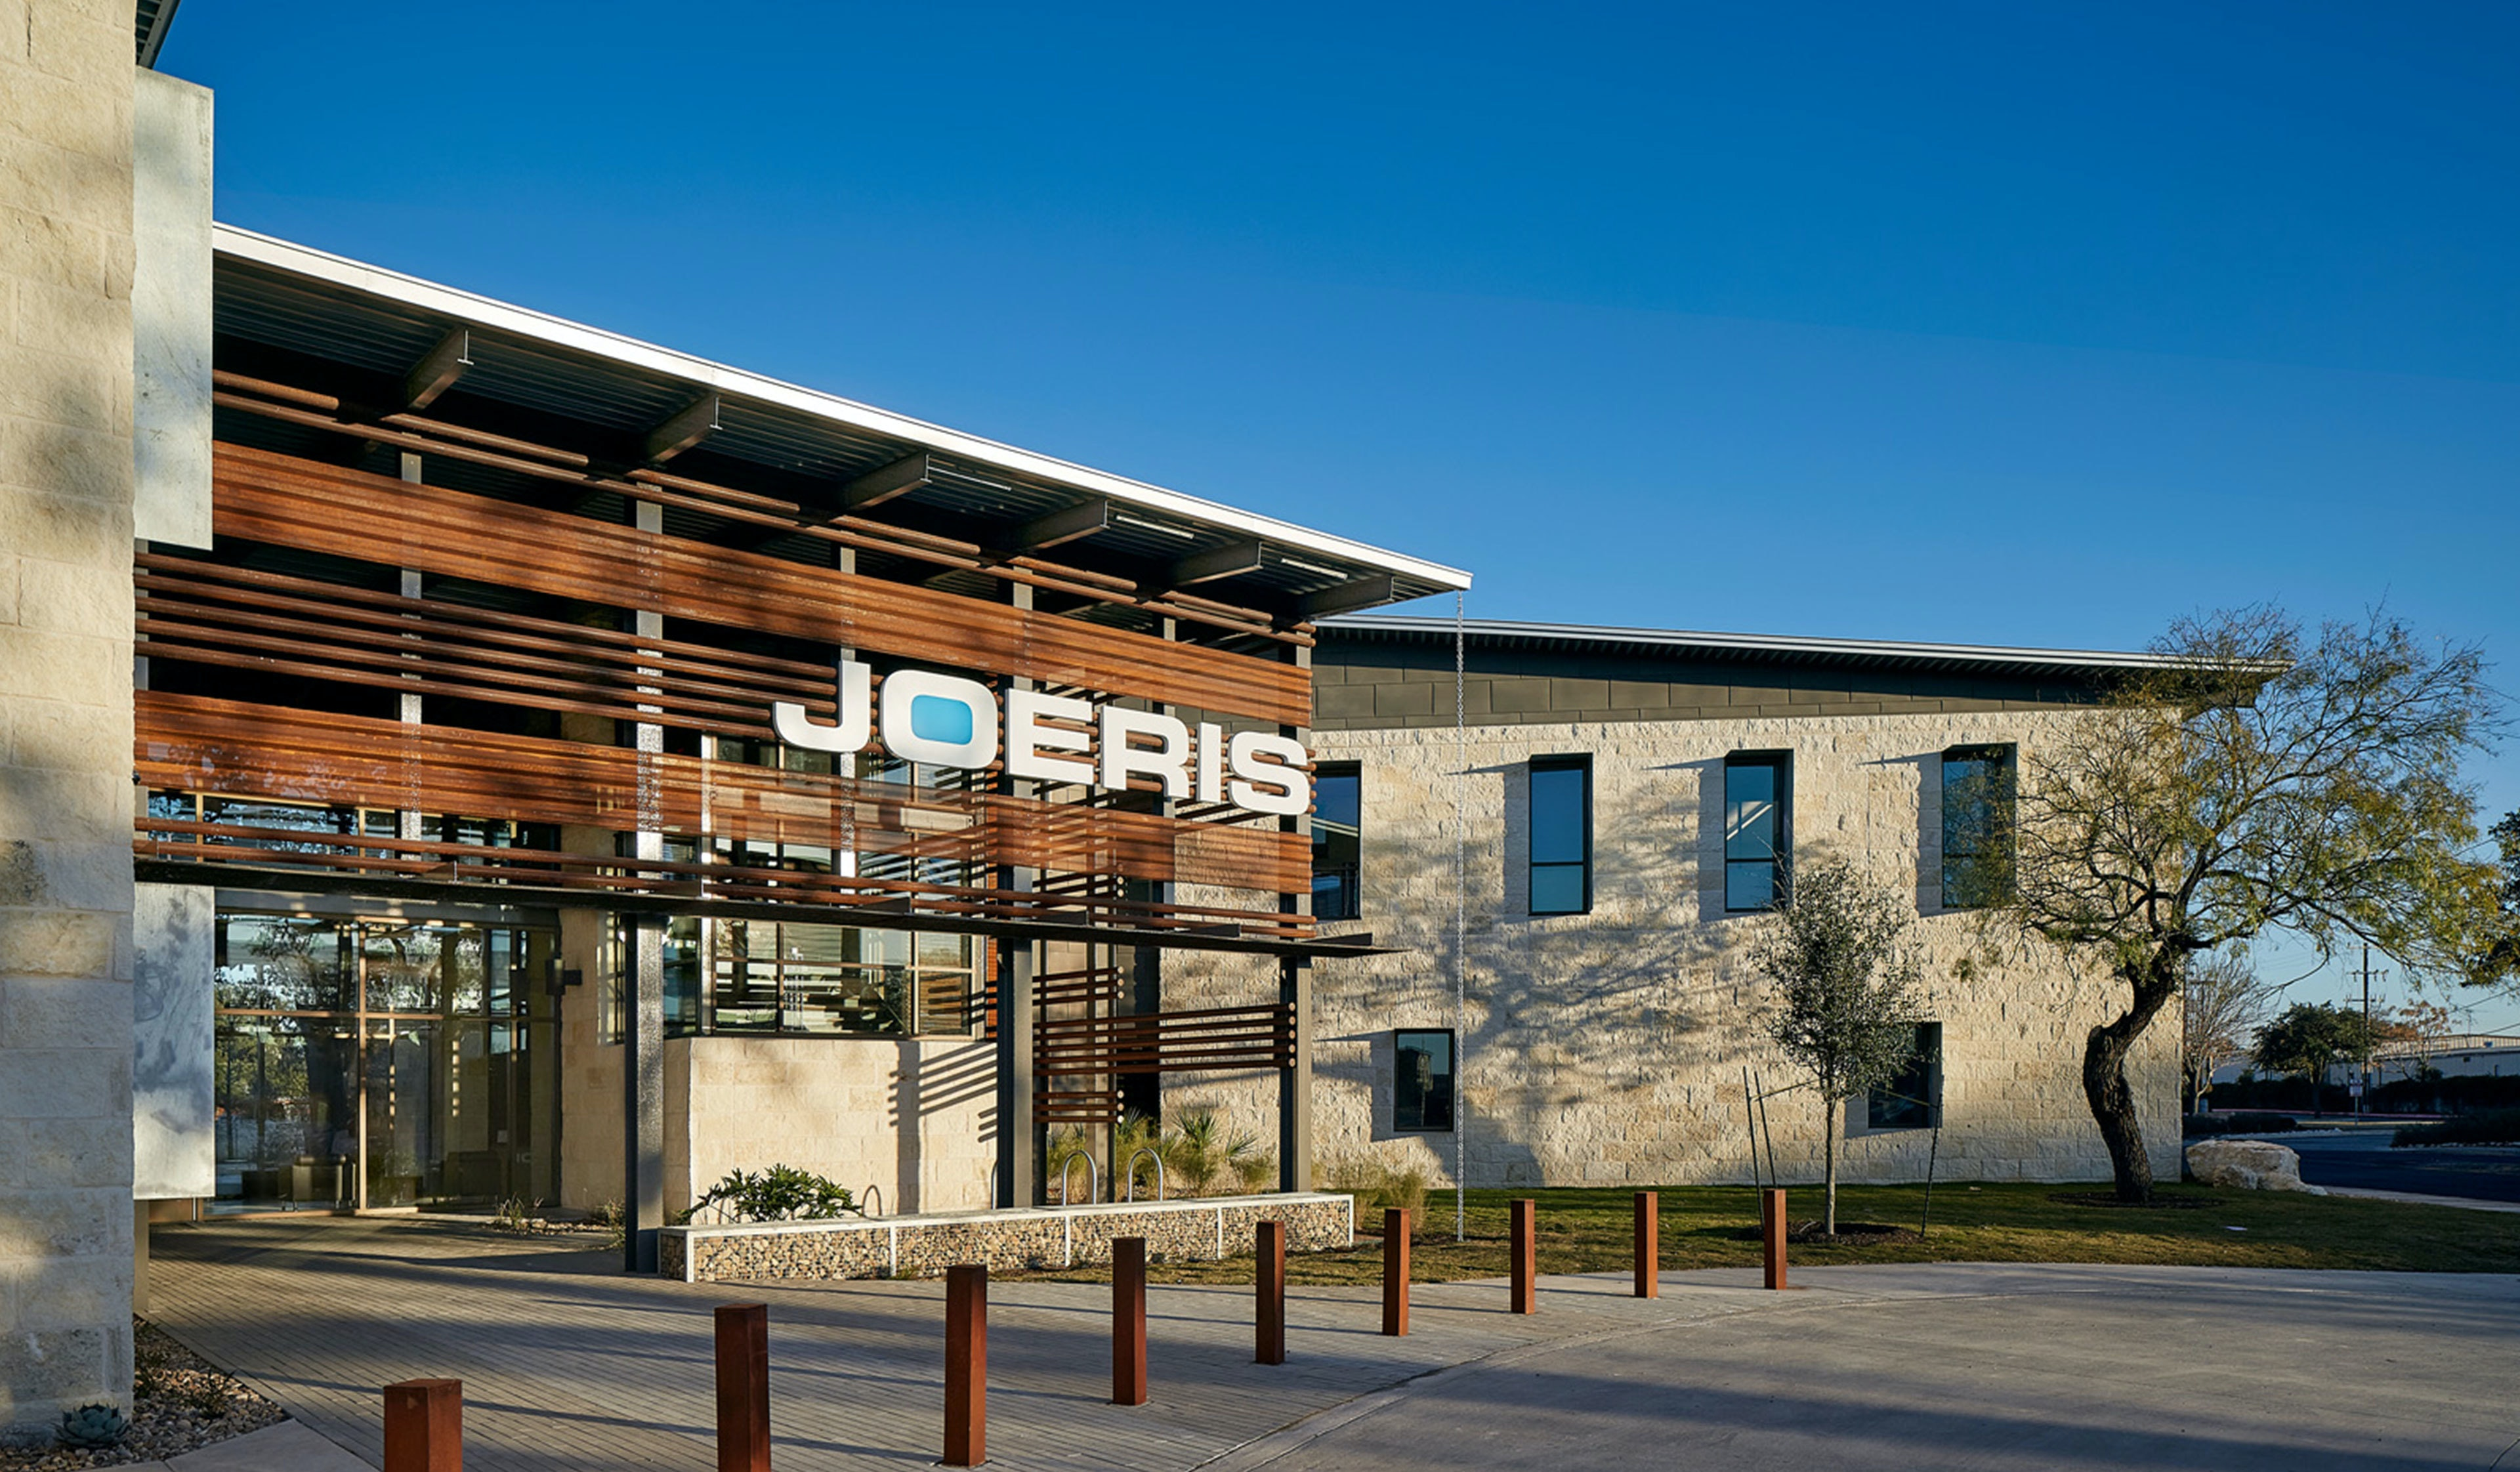 Joeris Headquarters